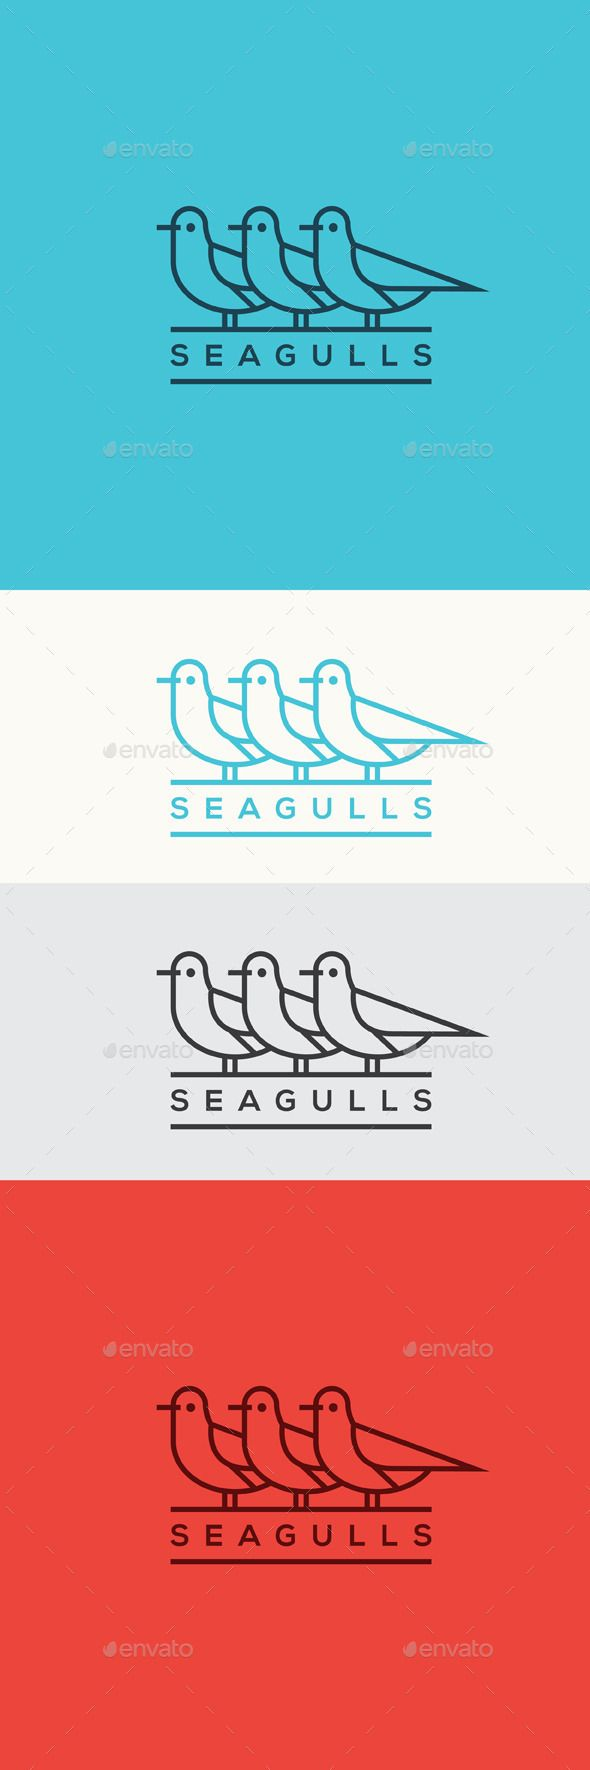 Seagulls Logo Template Vector EPS, AI #logotype Download: http://graphicriver.net/item/seagulls/11459425?ref=ksioks